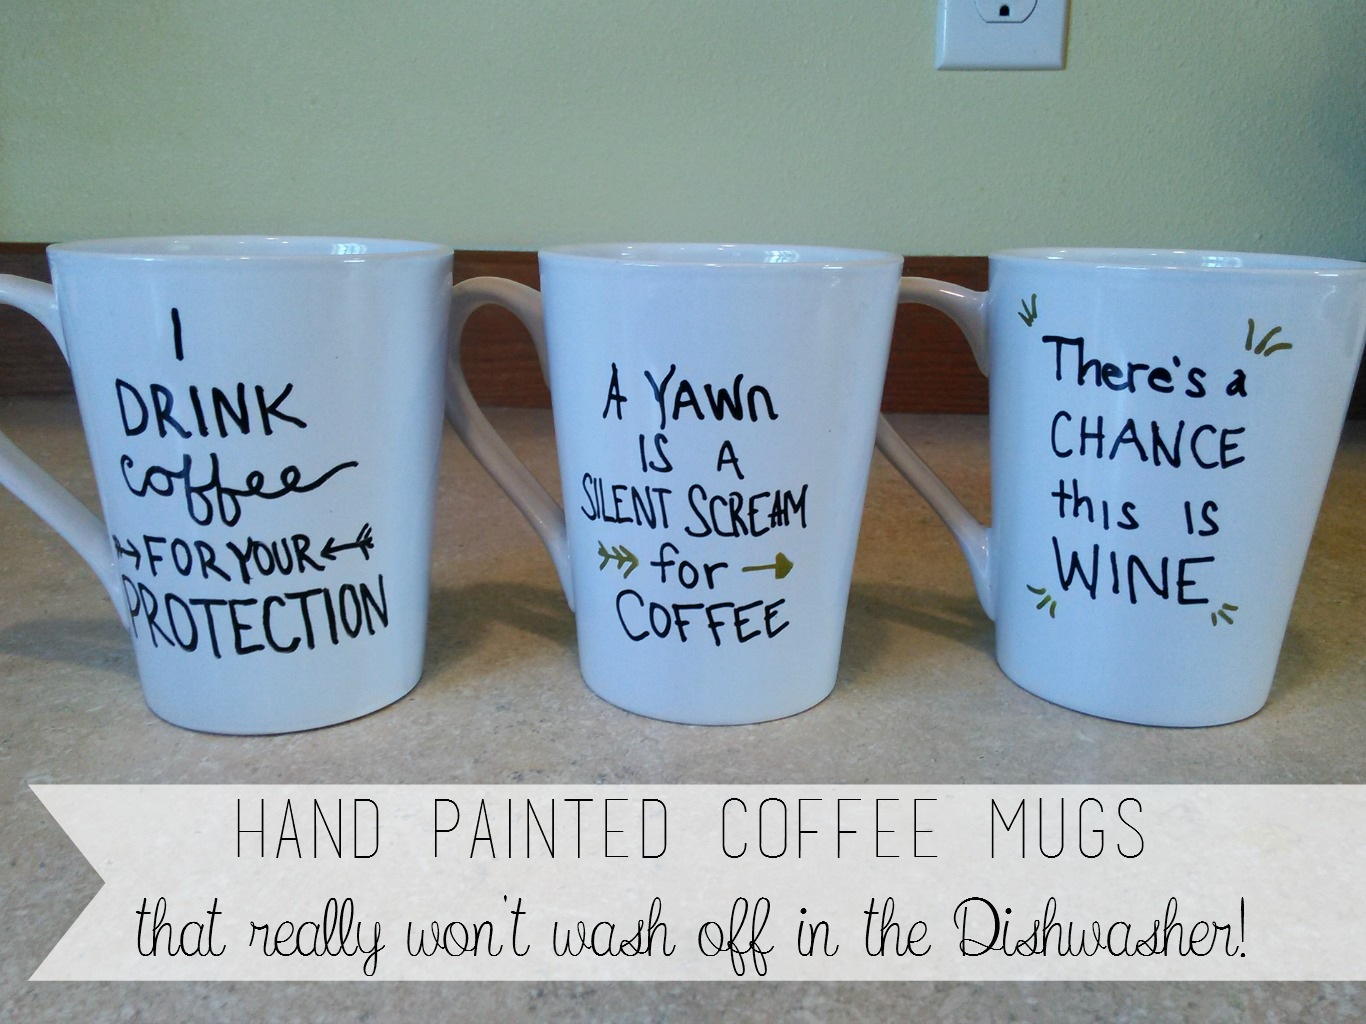 Hand painted quote mugs